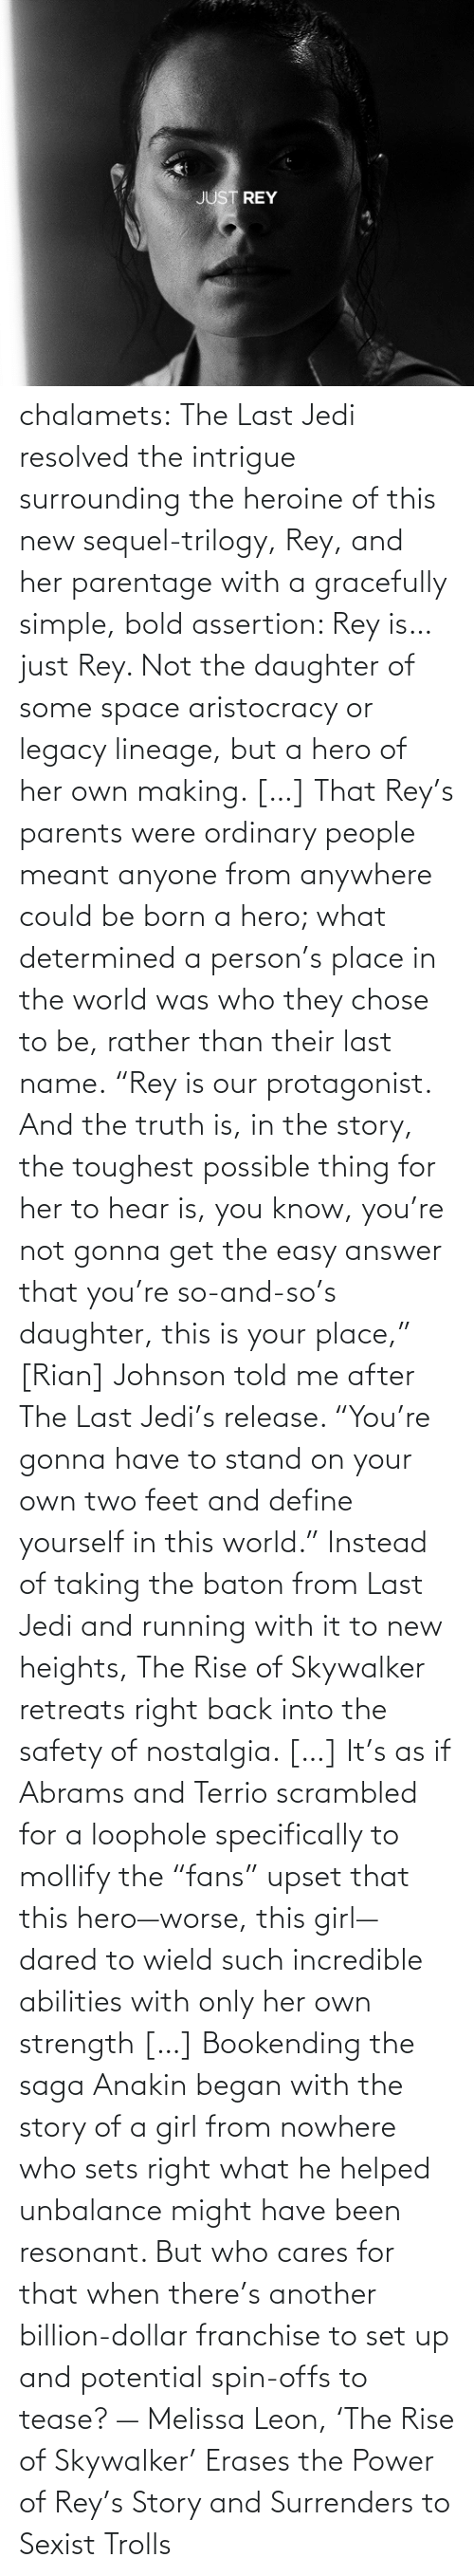 "Last: chalamets:  The Last Jedi resolved the intrigue surrounding the heroine of this new sequel-trilogy, Rey, and her parentage with a gracefully simple, bold assertion: Rey is… just Rey. Not the daughter of some space aristocracy or legacy lineage, but a hero of her own making. […] That Rey's parents were ordinary people meant anyone from anywhere could be born a hero; what determined a person's place in the world was who they chose to be, rather than their last name. ""Rey is our protagonist. And the truth is, in the story, the toughest possible thing for her to hear is, you know, you're not gonna get the easy answer that you're so-and-so's daughter, this is your place,"" [Rian] Johnson told me after The Last Jedi's release. ""You're gonna have to stand on your own two feet and define yourself in this world."" Instead of taking the baton from Last Jedi and running with it to new heights, The Rise of Skywalker retreats right back into the safety of nostalgia. […] It's as if Abrams and Terrio scrambled for a loophole specifically to mollify the ""fans"" upset that this hero—worse, this girl—dared to wield such incredible abilities with only her own strength […] Bookending the saga Anakin began with the story of a girl from nowhere who sets right what he helped unbalance might have been resonant. But who cares for that when there's another billion-dollar franchise to set up and potential spin-offs to tease? — Melissa Leon, 'The Rise of Skywalker' Erases the Power of Rey's Story and Surrenders to Sexist Trolls"